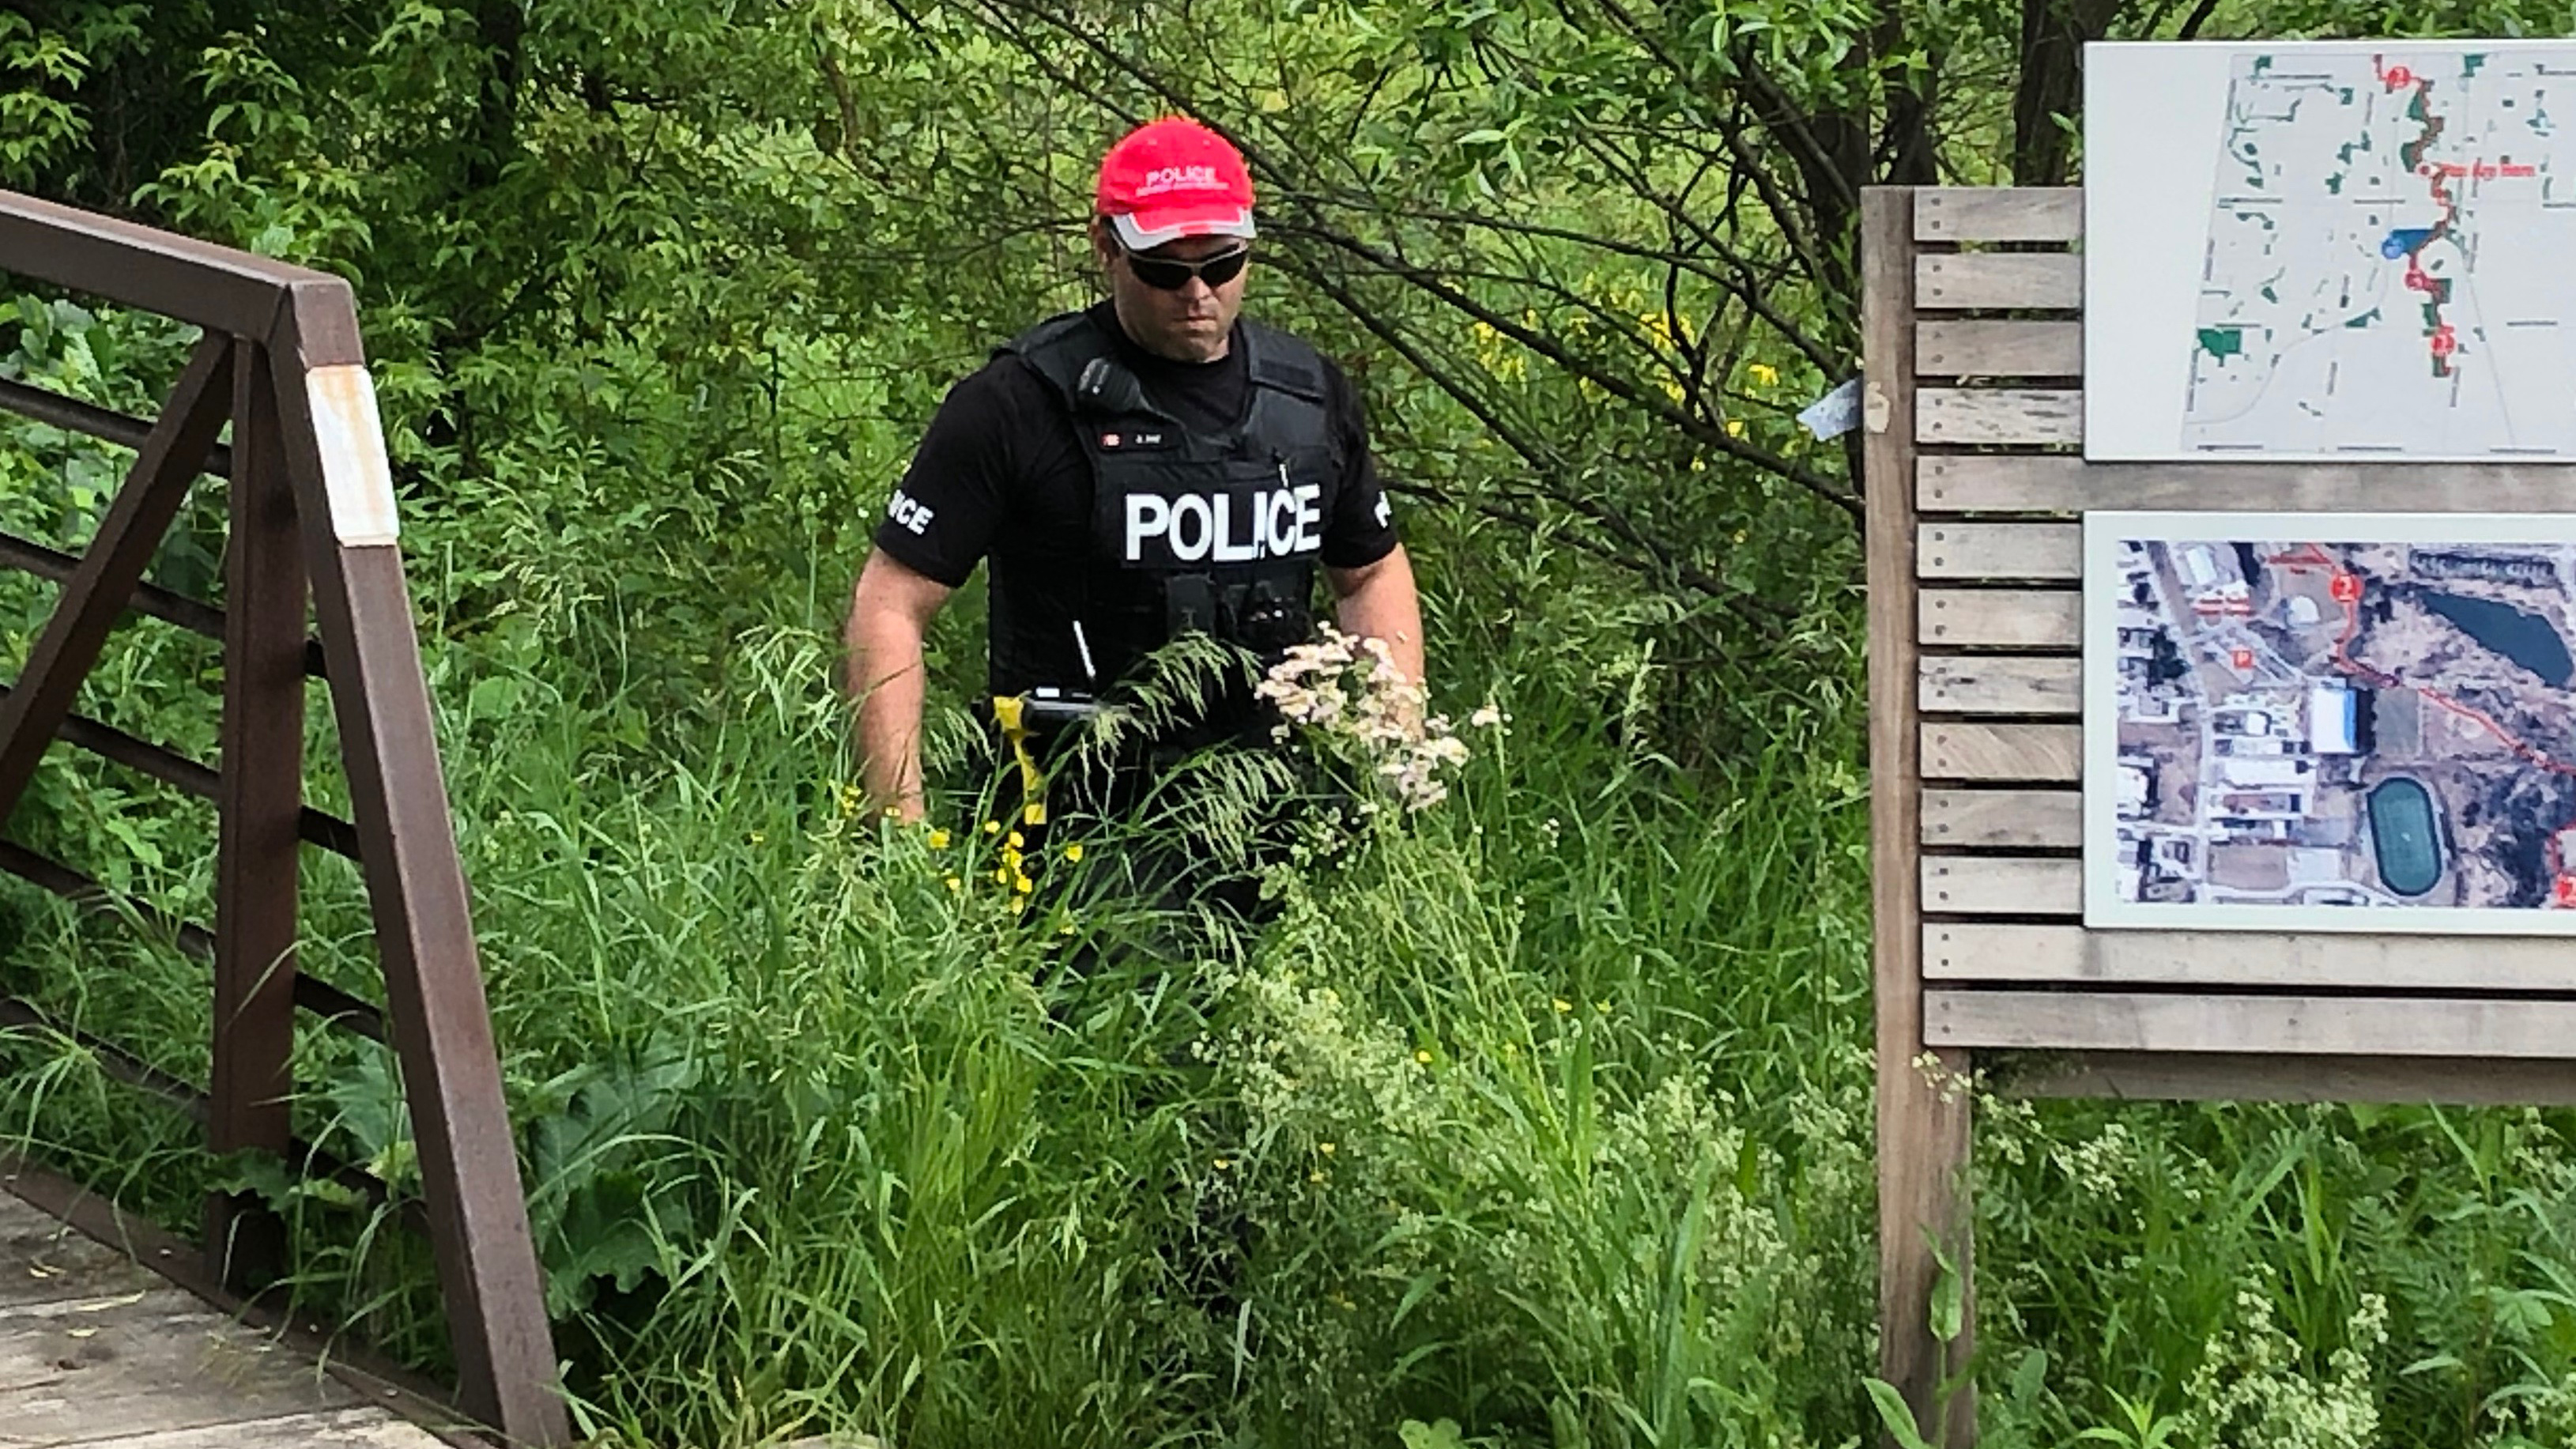 Police search trail in Aurora for evidence of sexual assault, June 25, 2019.